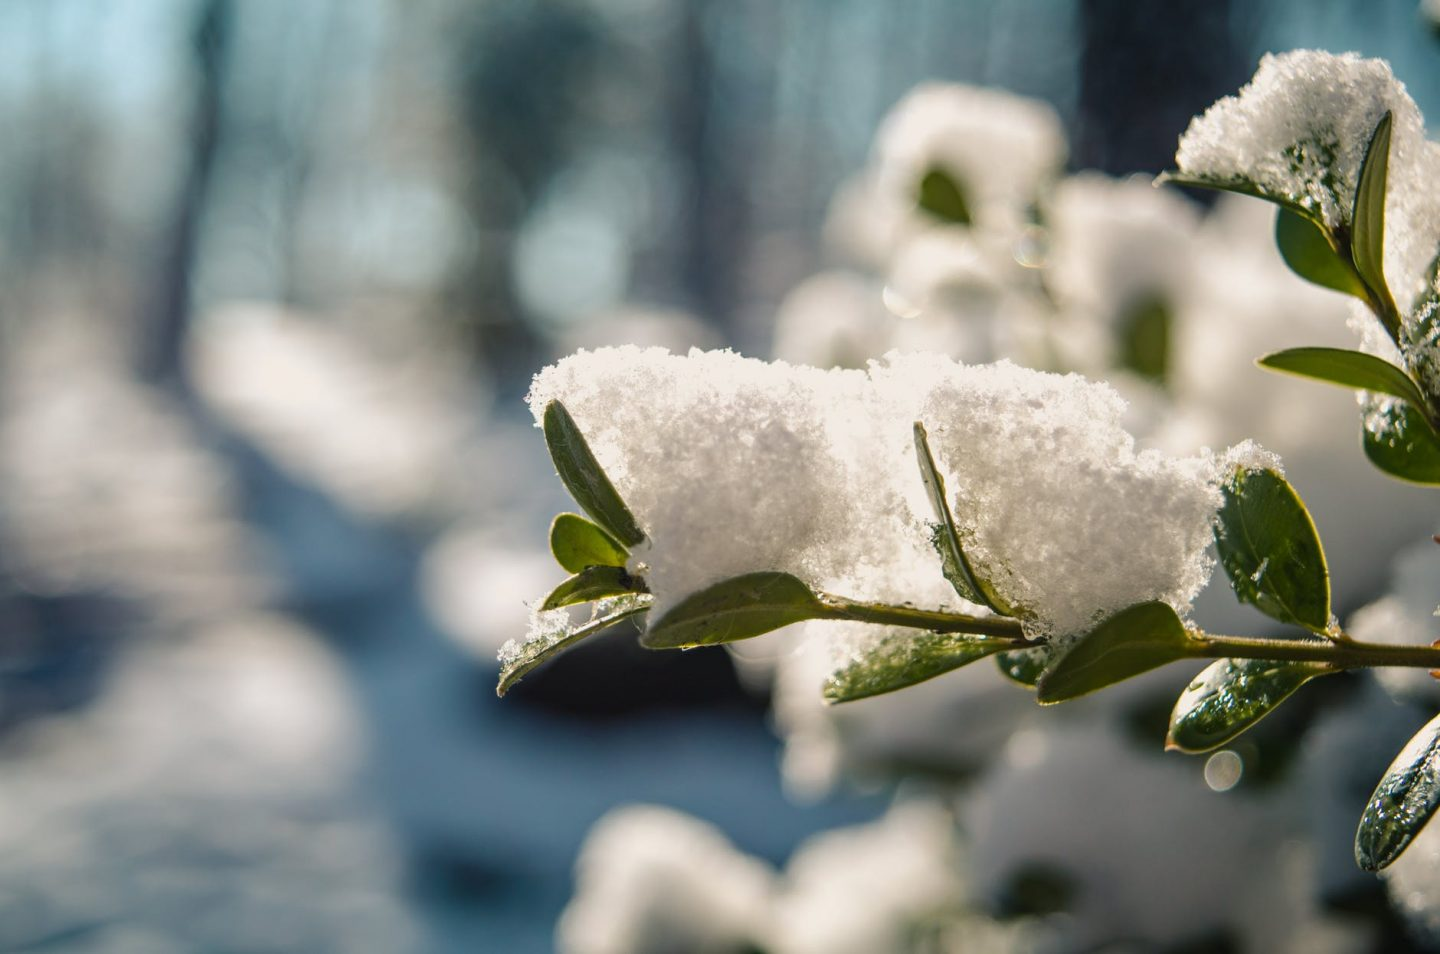 How to Make Sure your Garden Doesn't Come to a Halt During Winter